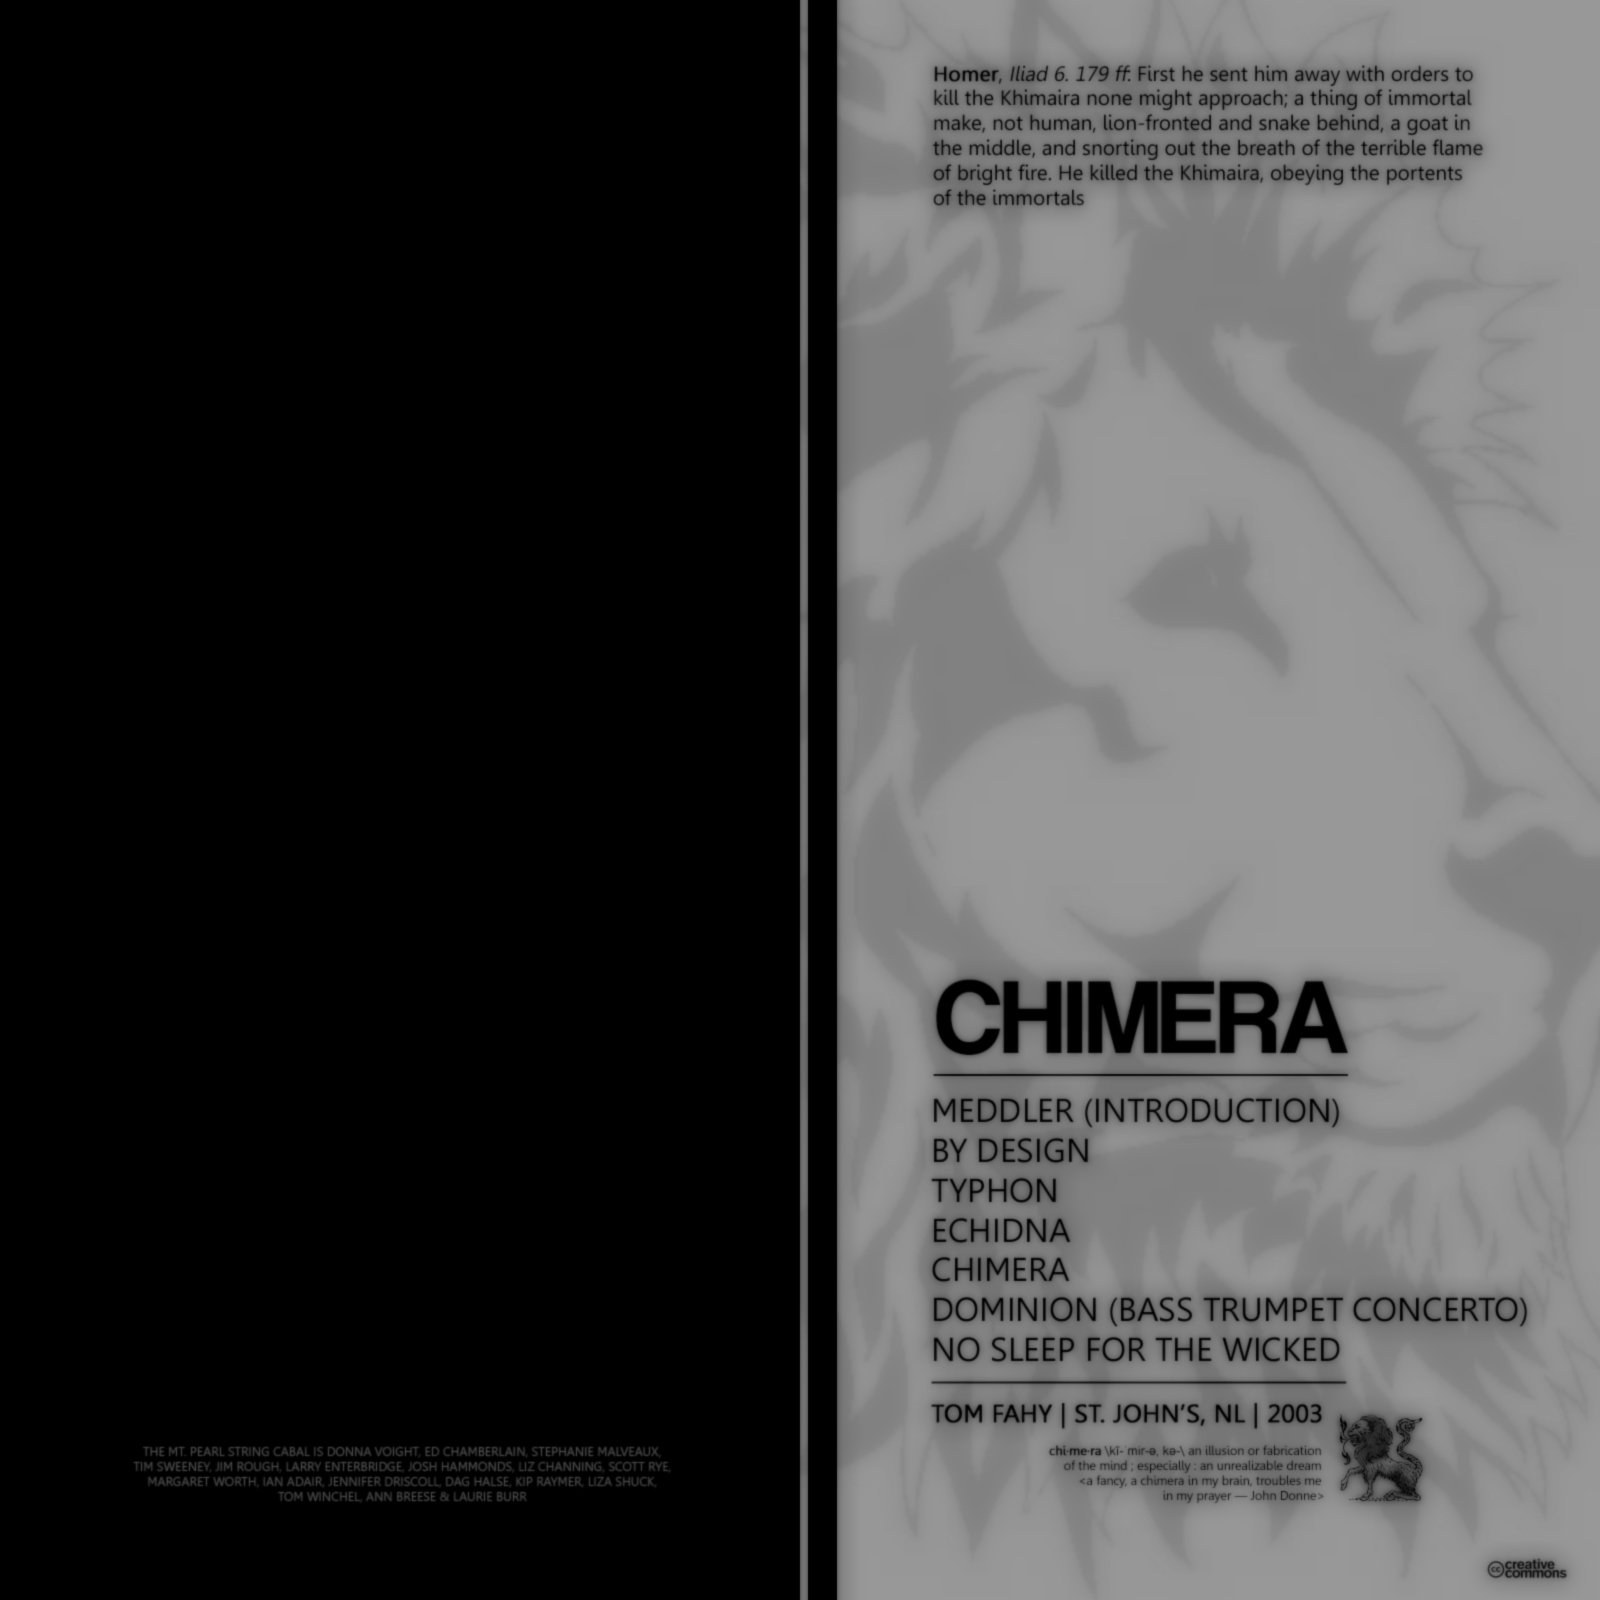 Chimera by Tom Fahy